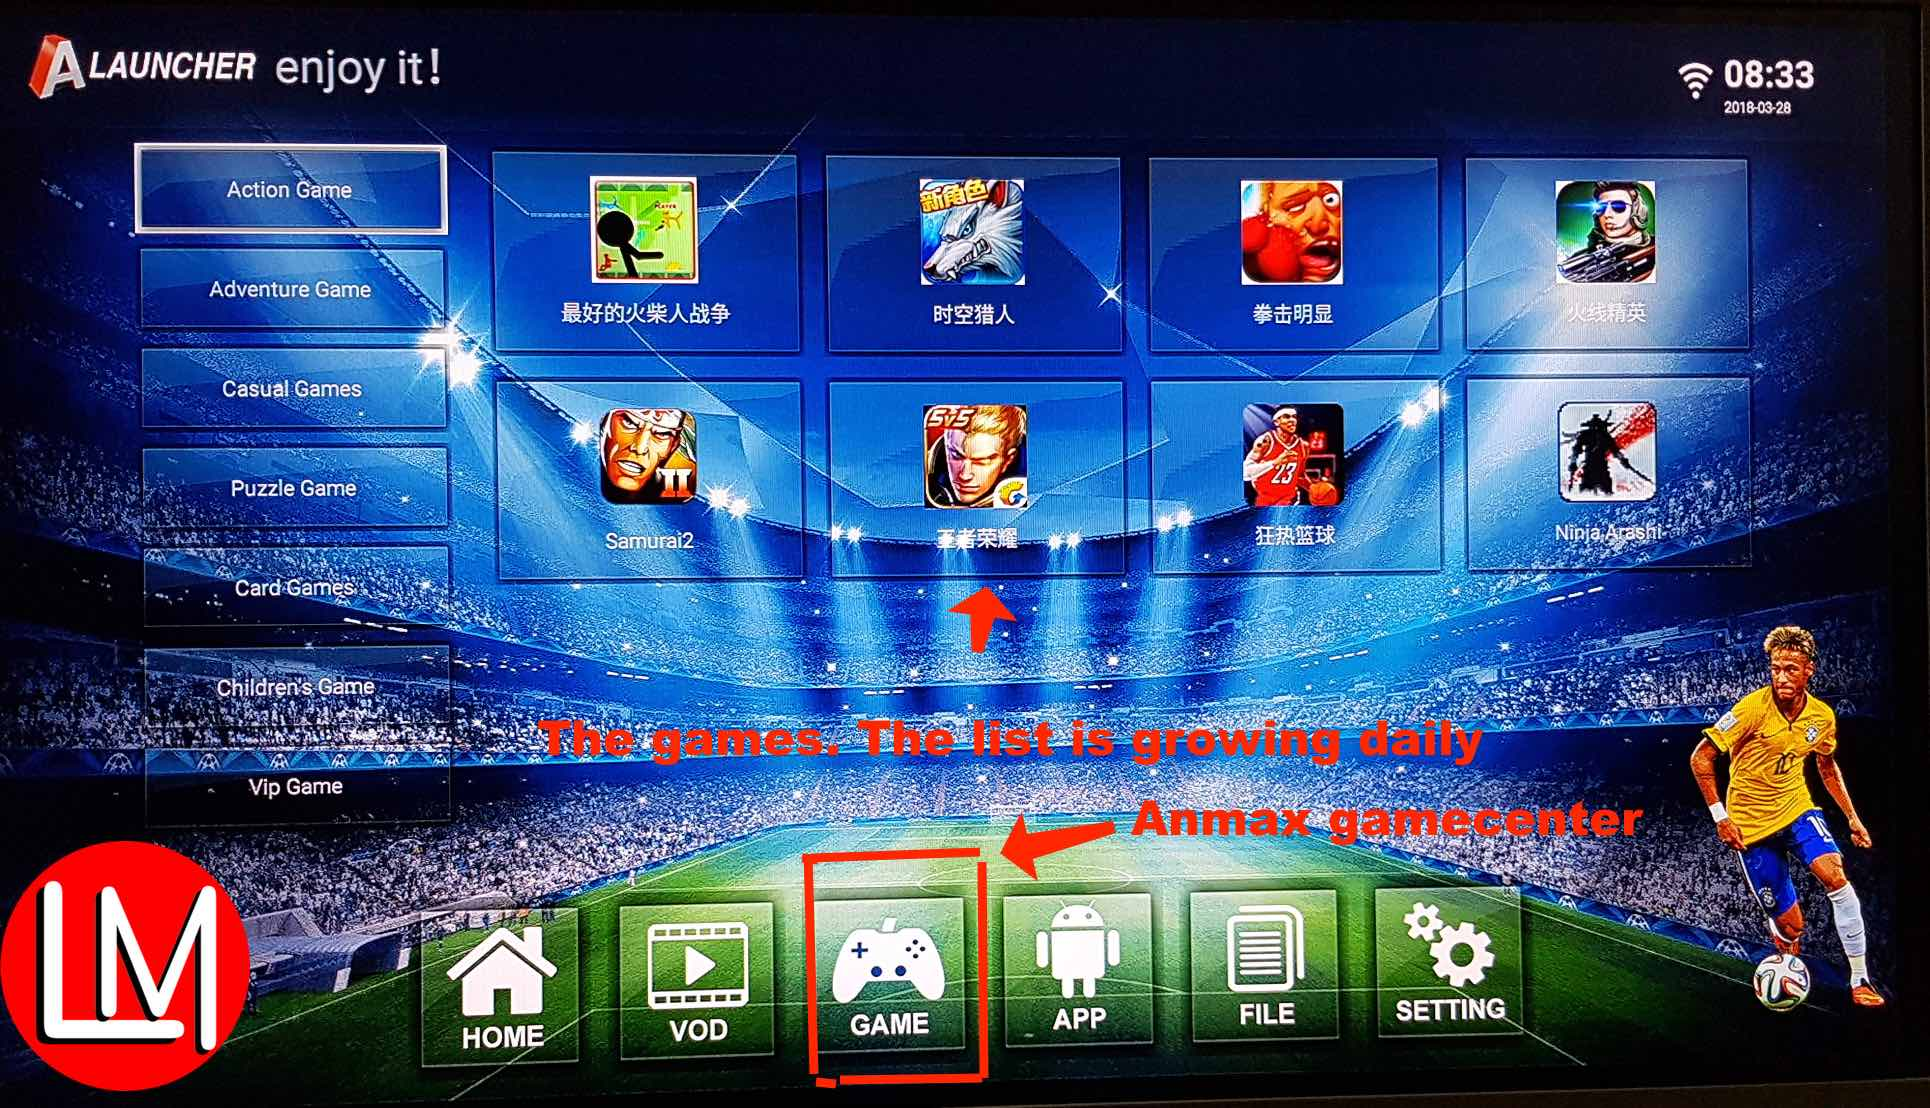 How to configure Anmax Joystick/Gamepad to play Pes 2018 & General gamepad configuration